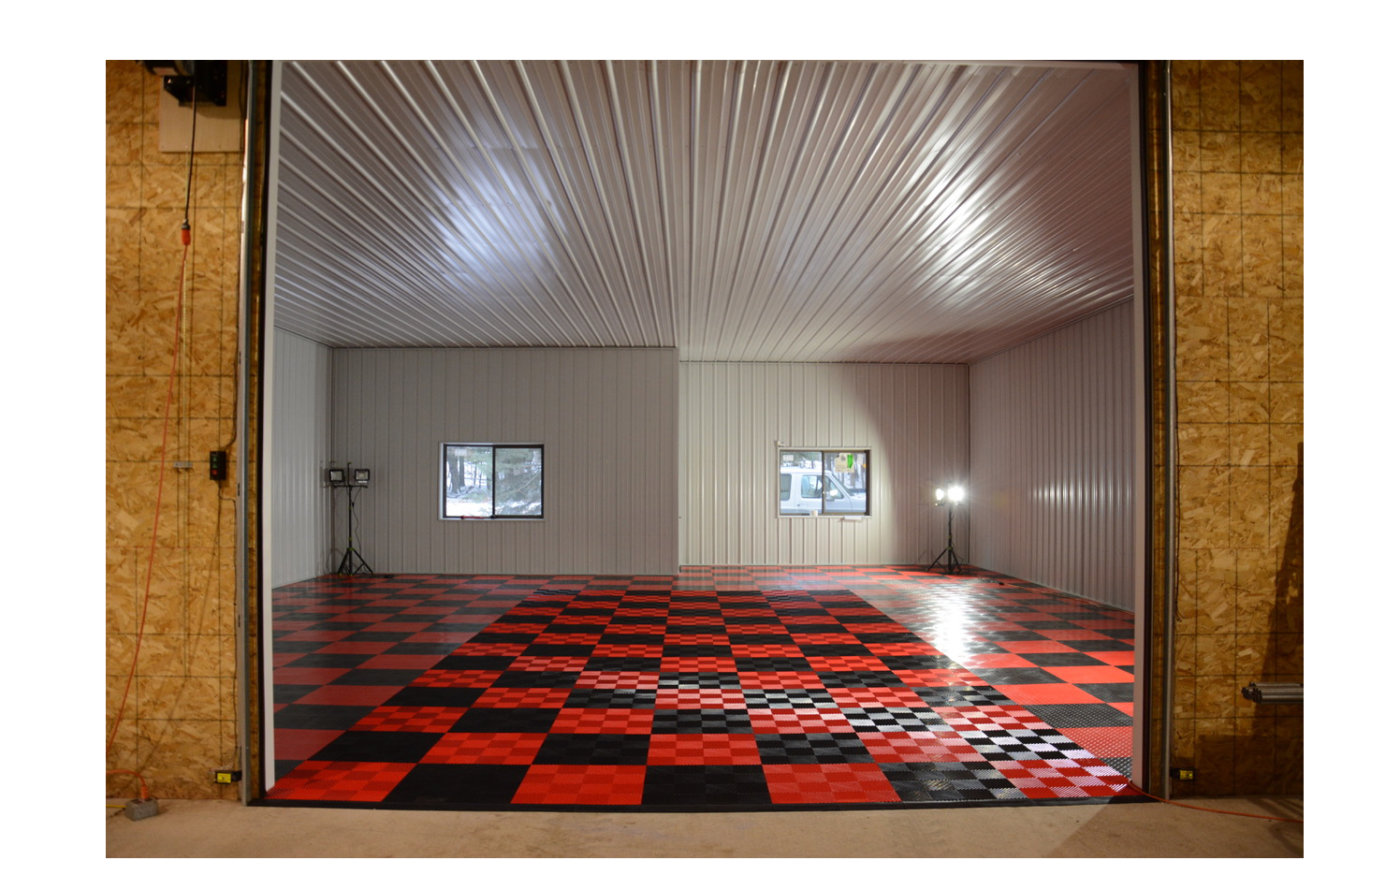 Racedeck modular garage flooring tiles reincarnation magazine racedeck modular garage flooring tiles installed dailygadgetfo Image collections